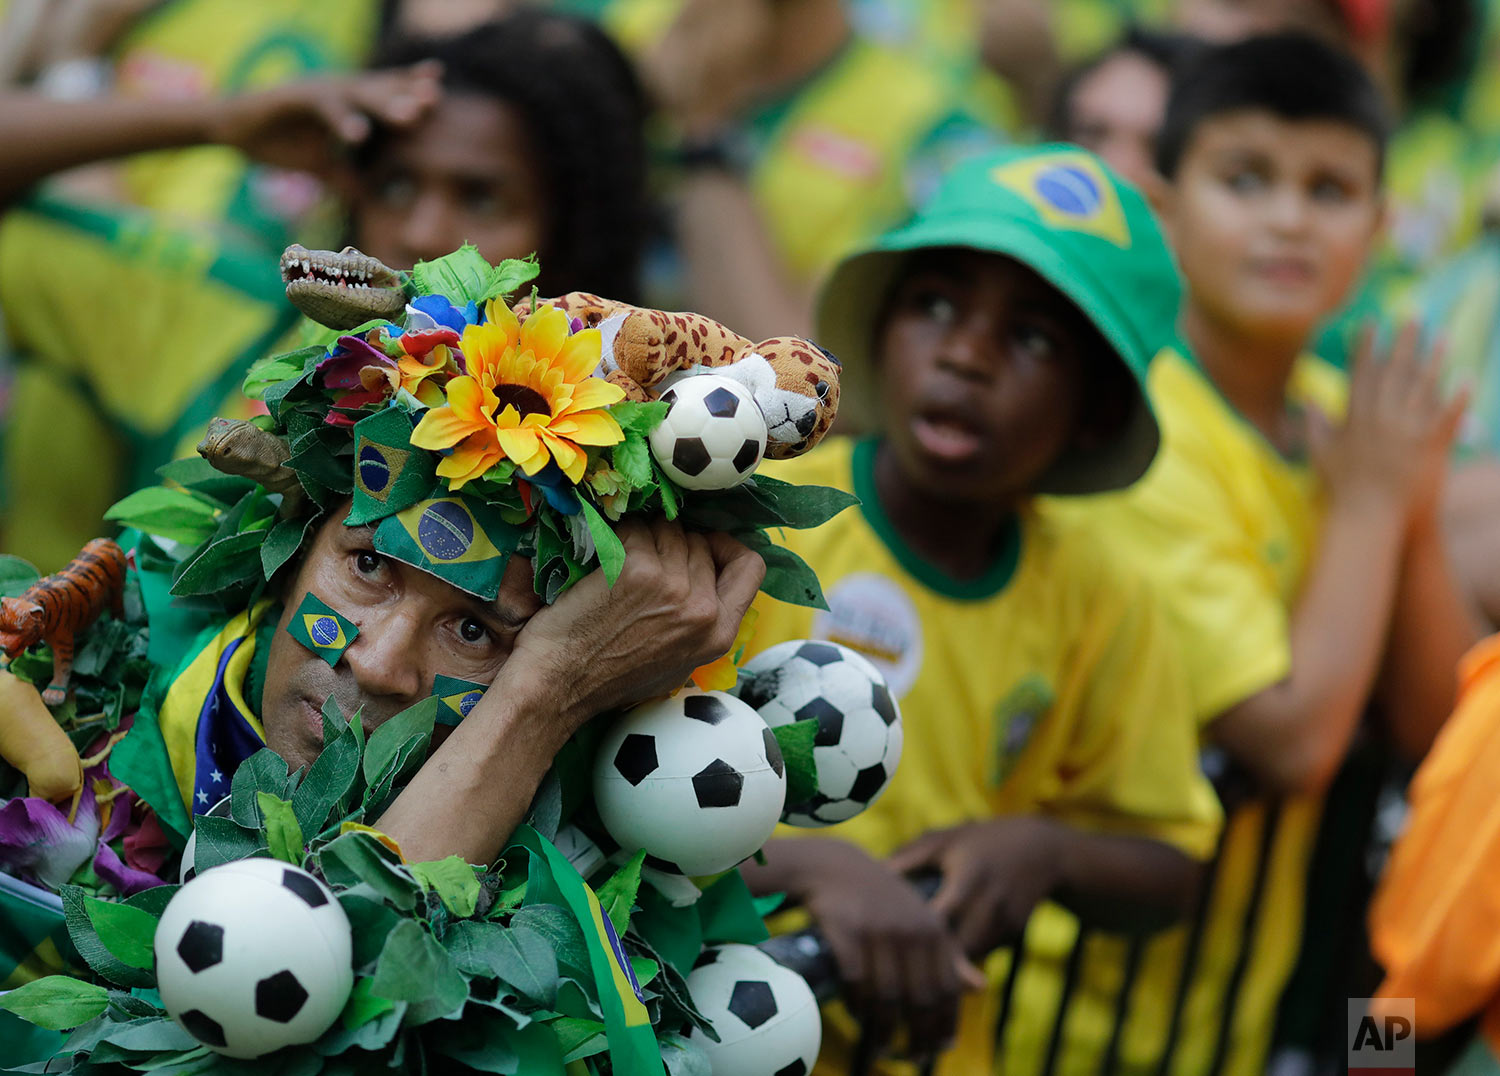 Brazil soccer fans react at the end of a live broadcast of a World Cup quarterfinal match with Belgium in Rio de Janeiro, Brazil, July 6, 2018. Belgium knocked Brazil out of the World Cup and advanced to the semi-finals. (AP Photo/Leo Correa)